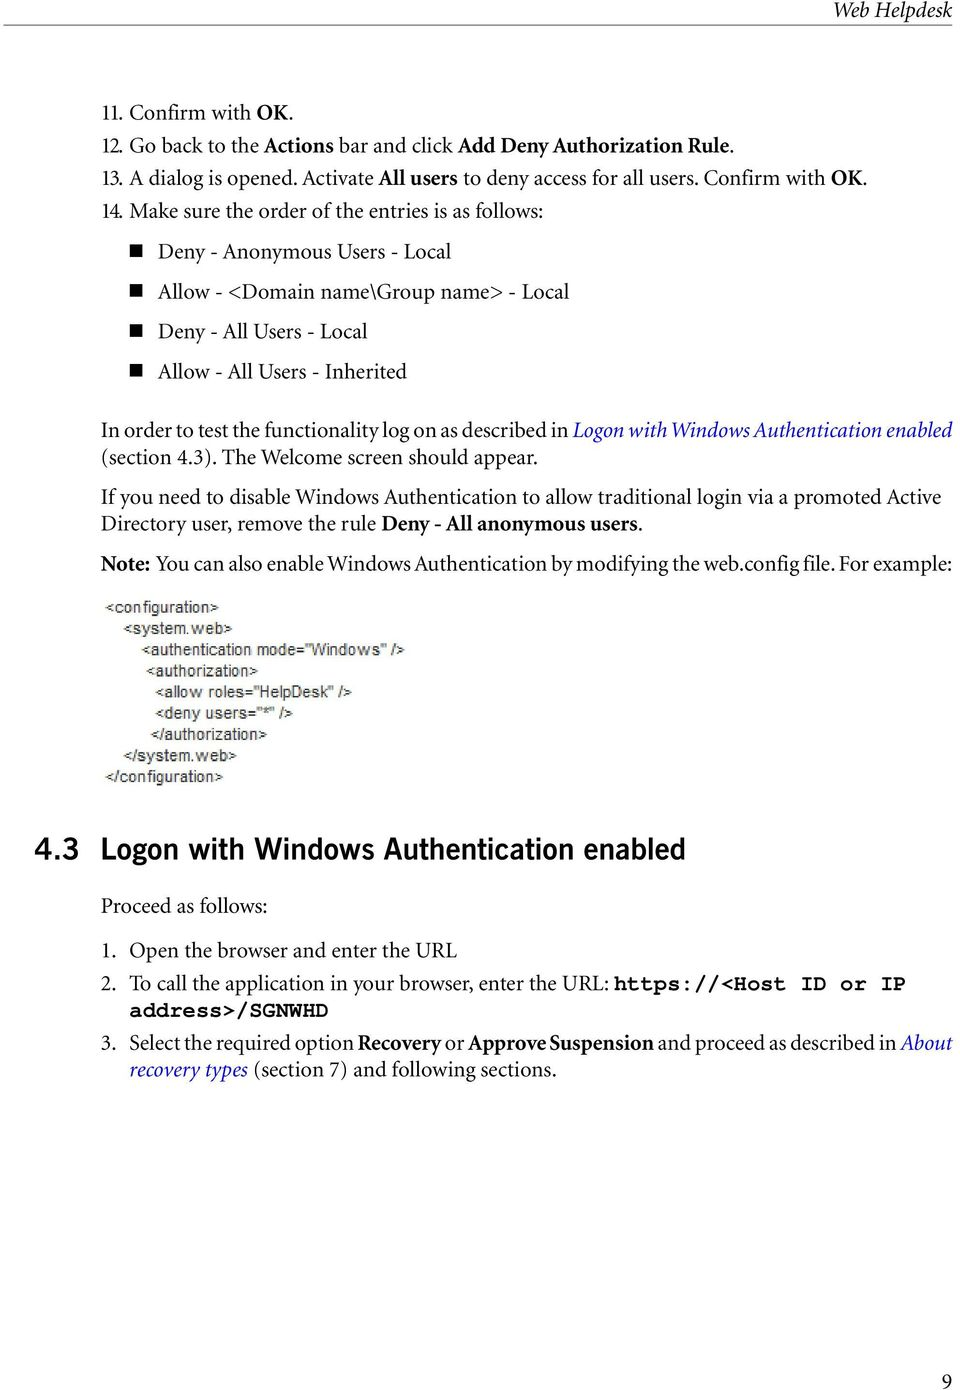 functionality log on as described in Logon with Windows Authentication enabled (section 4.3). The Welcome screen should appear.